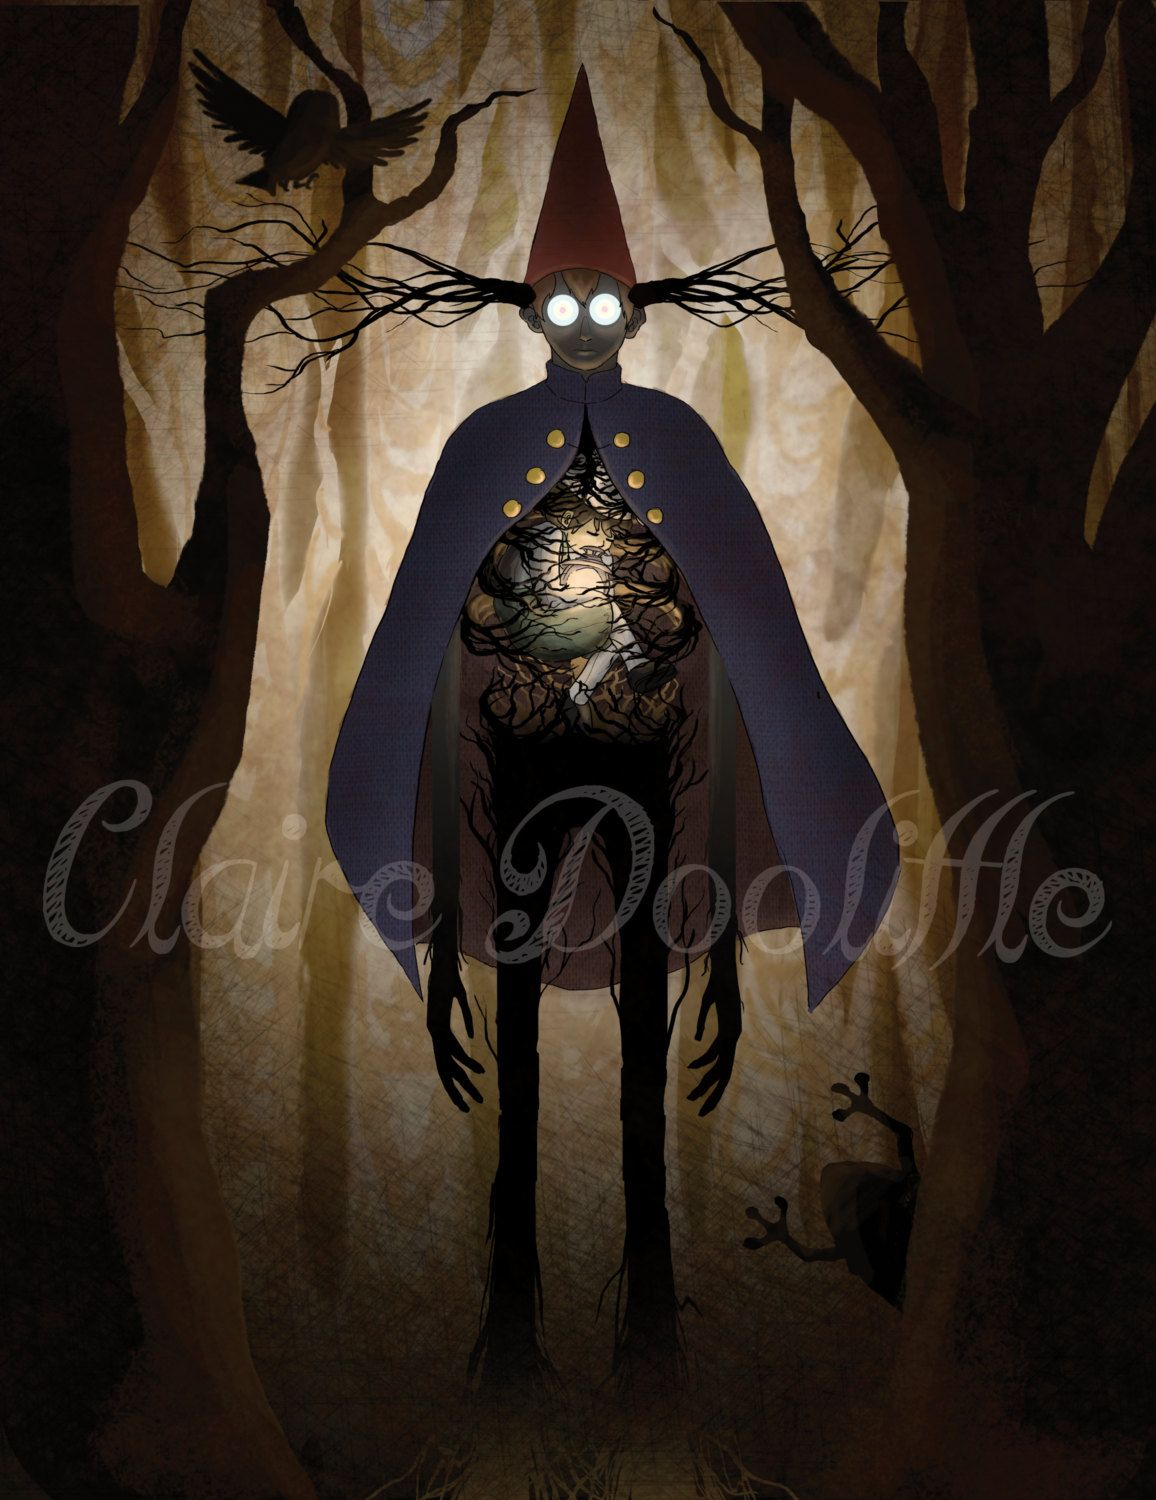 Over The Garden Wall The Beast Google Search Random Shows Or Book Intrests Pinterest